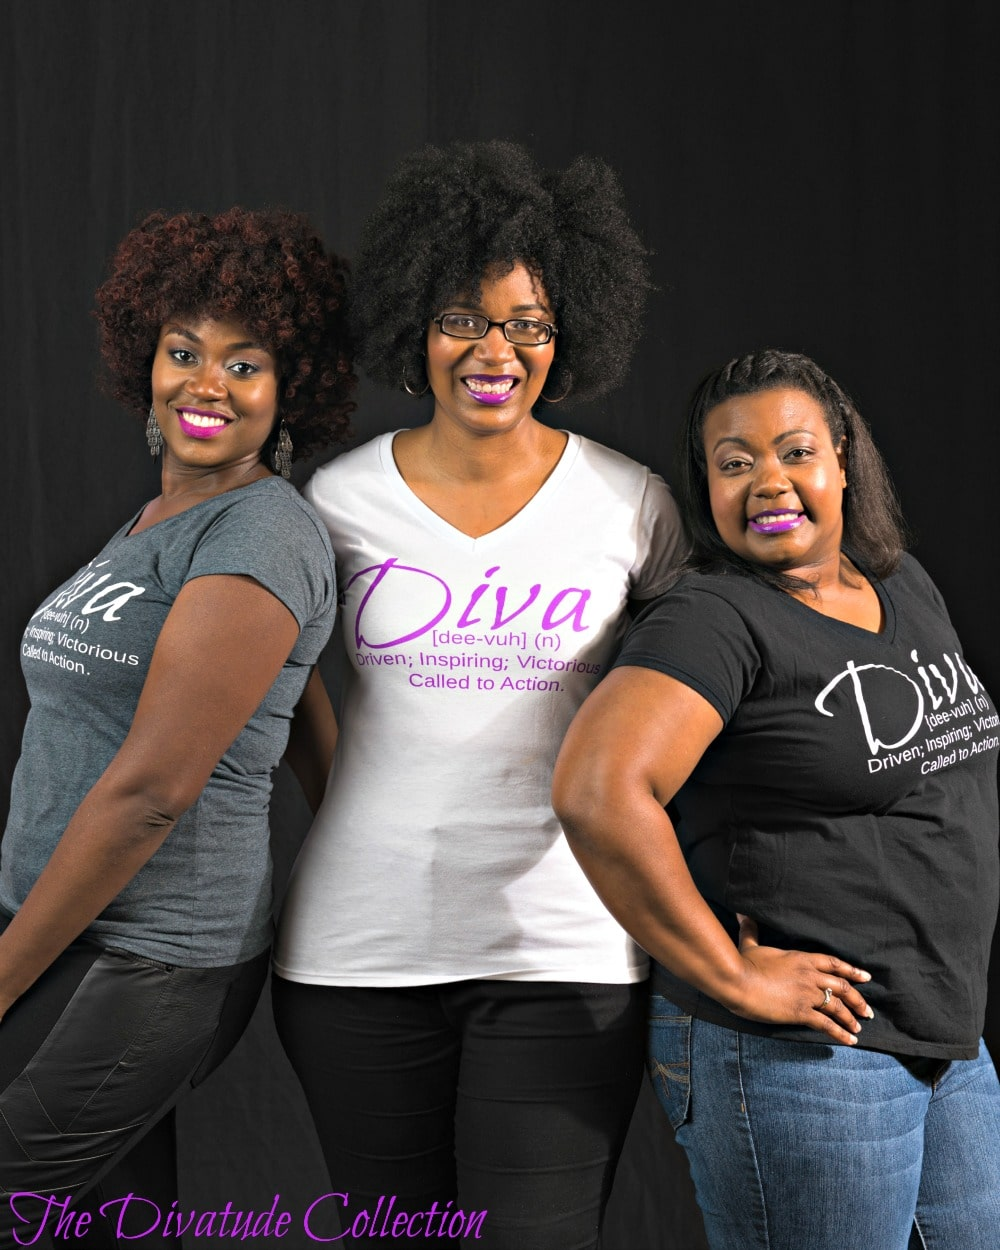 The Divatude Collection #DivaDefined